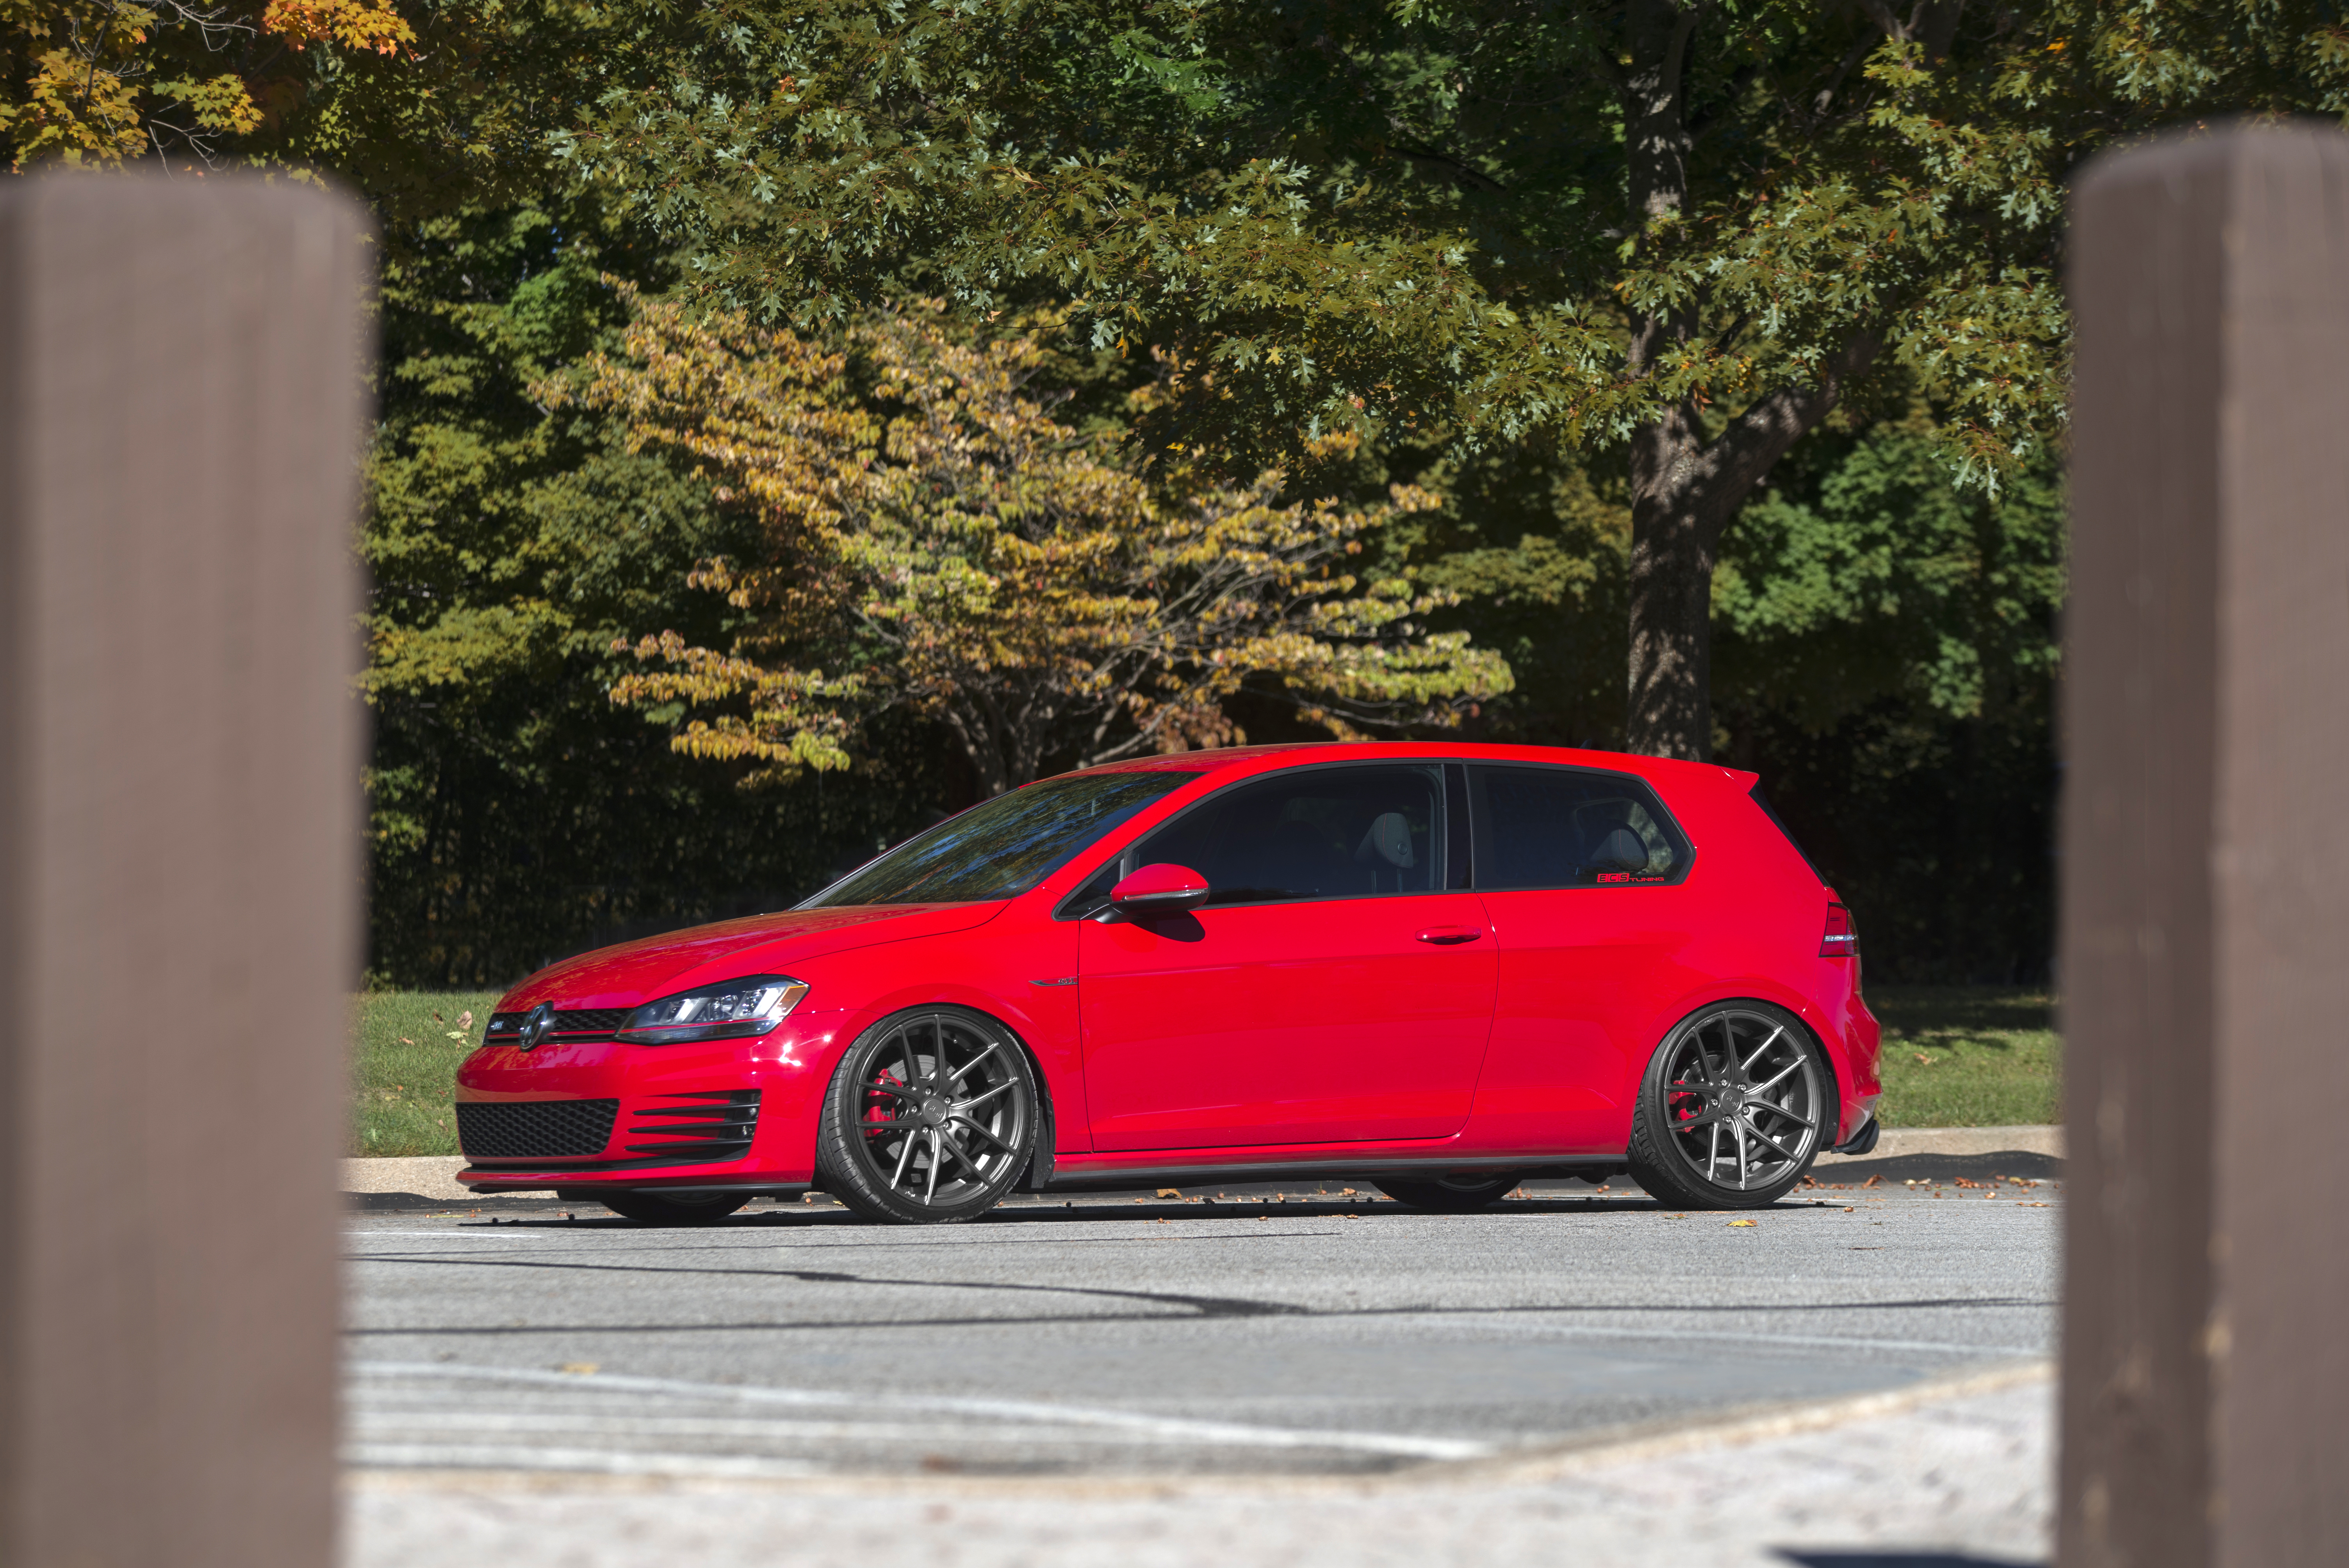 Best Mods For A Daily Driven Volkswagen Mk7 Or Mk7 5 Gti For Power And Performance Ecs Tuning